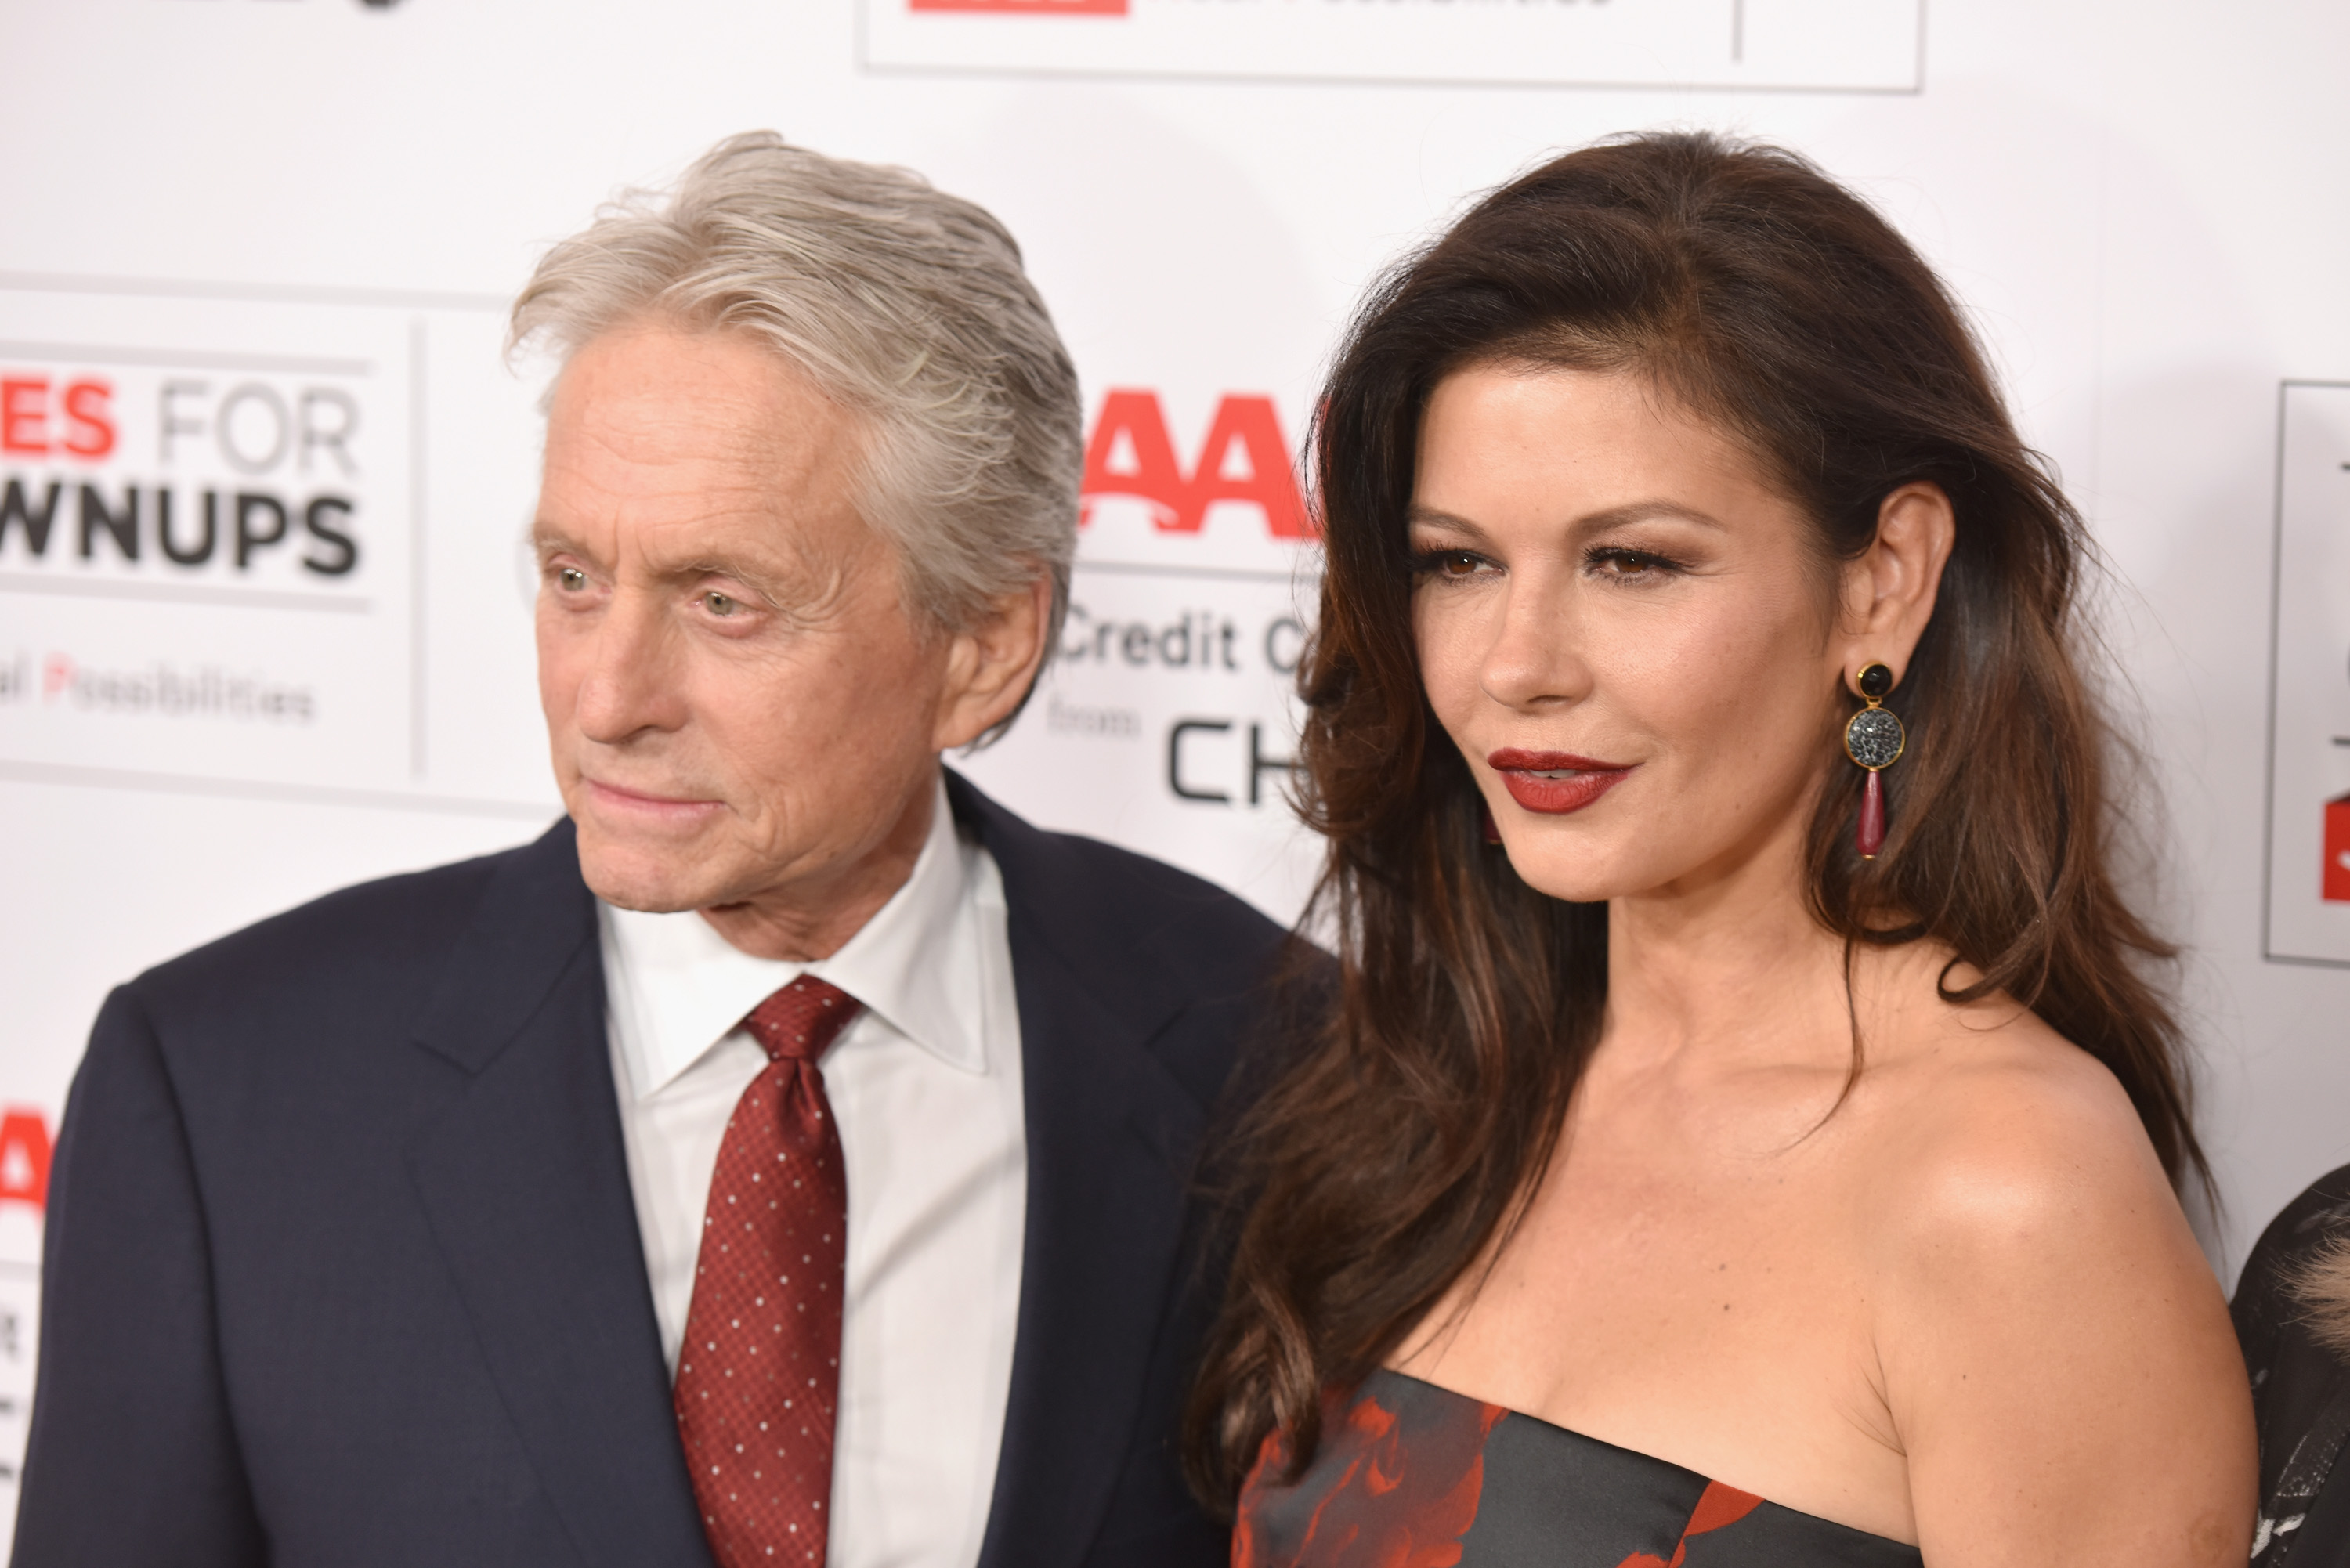 Catherine Zeta-Jones, svolta hot a 49 anni